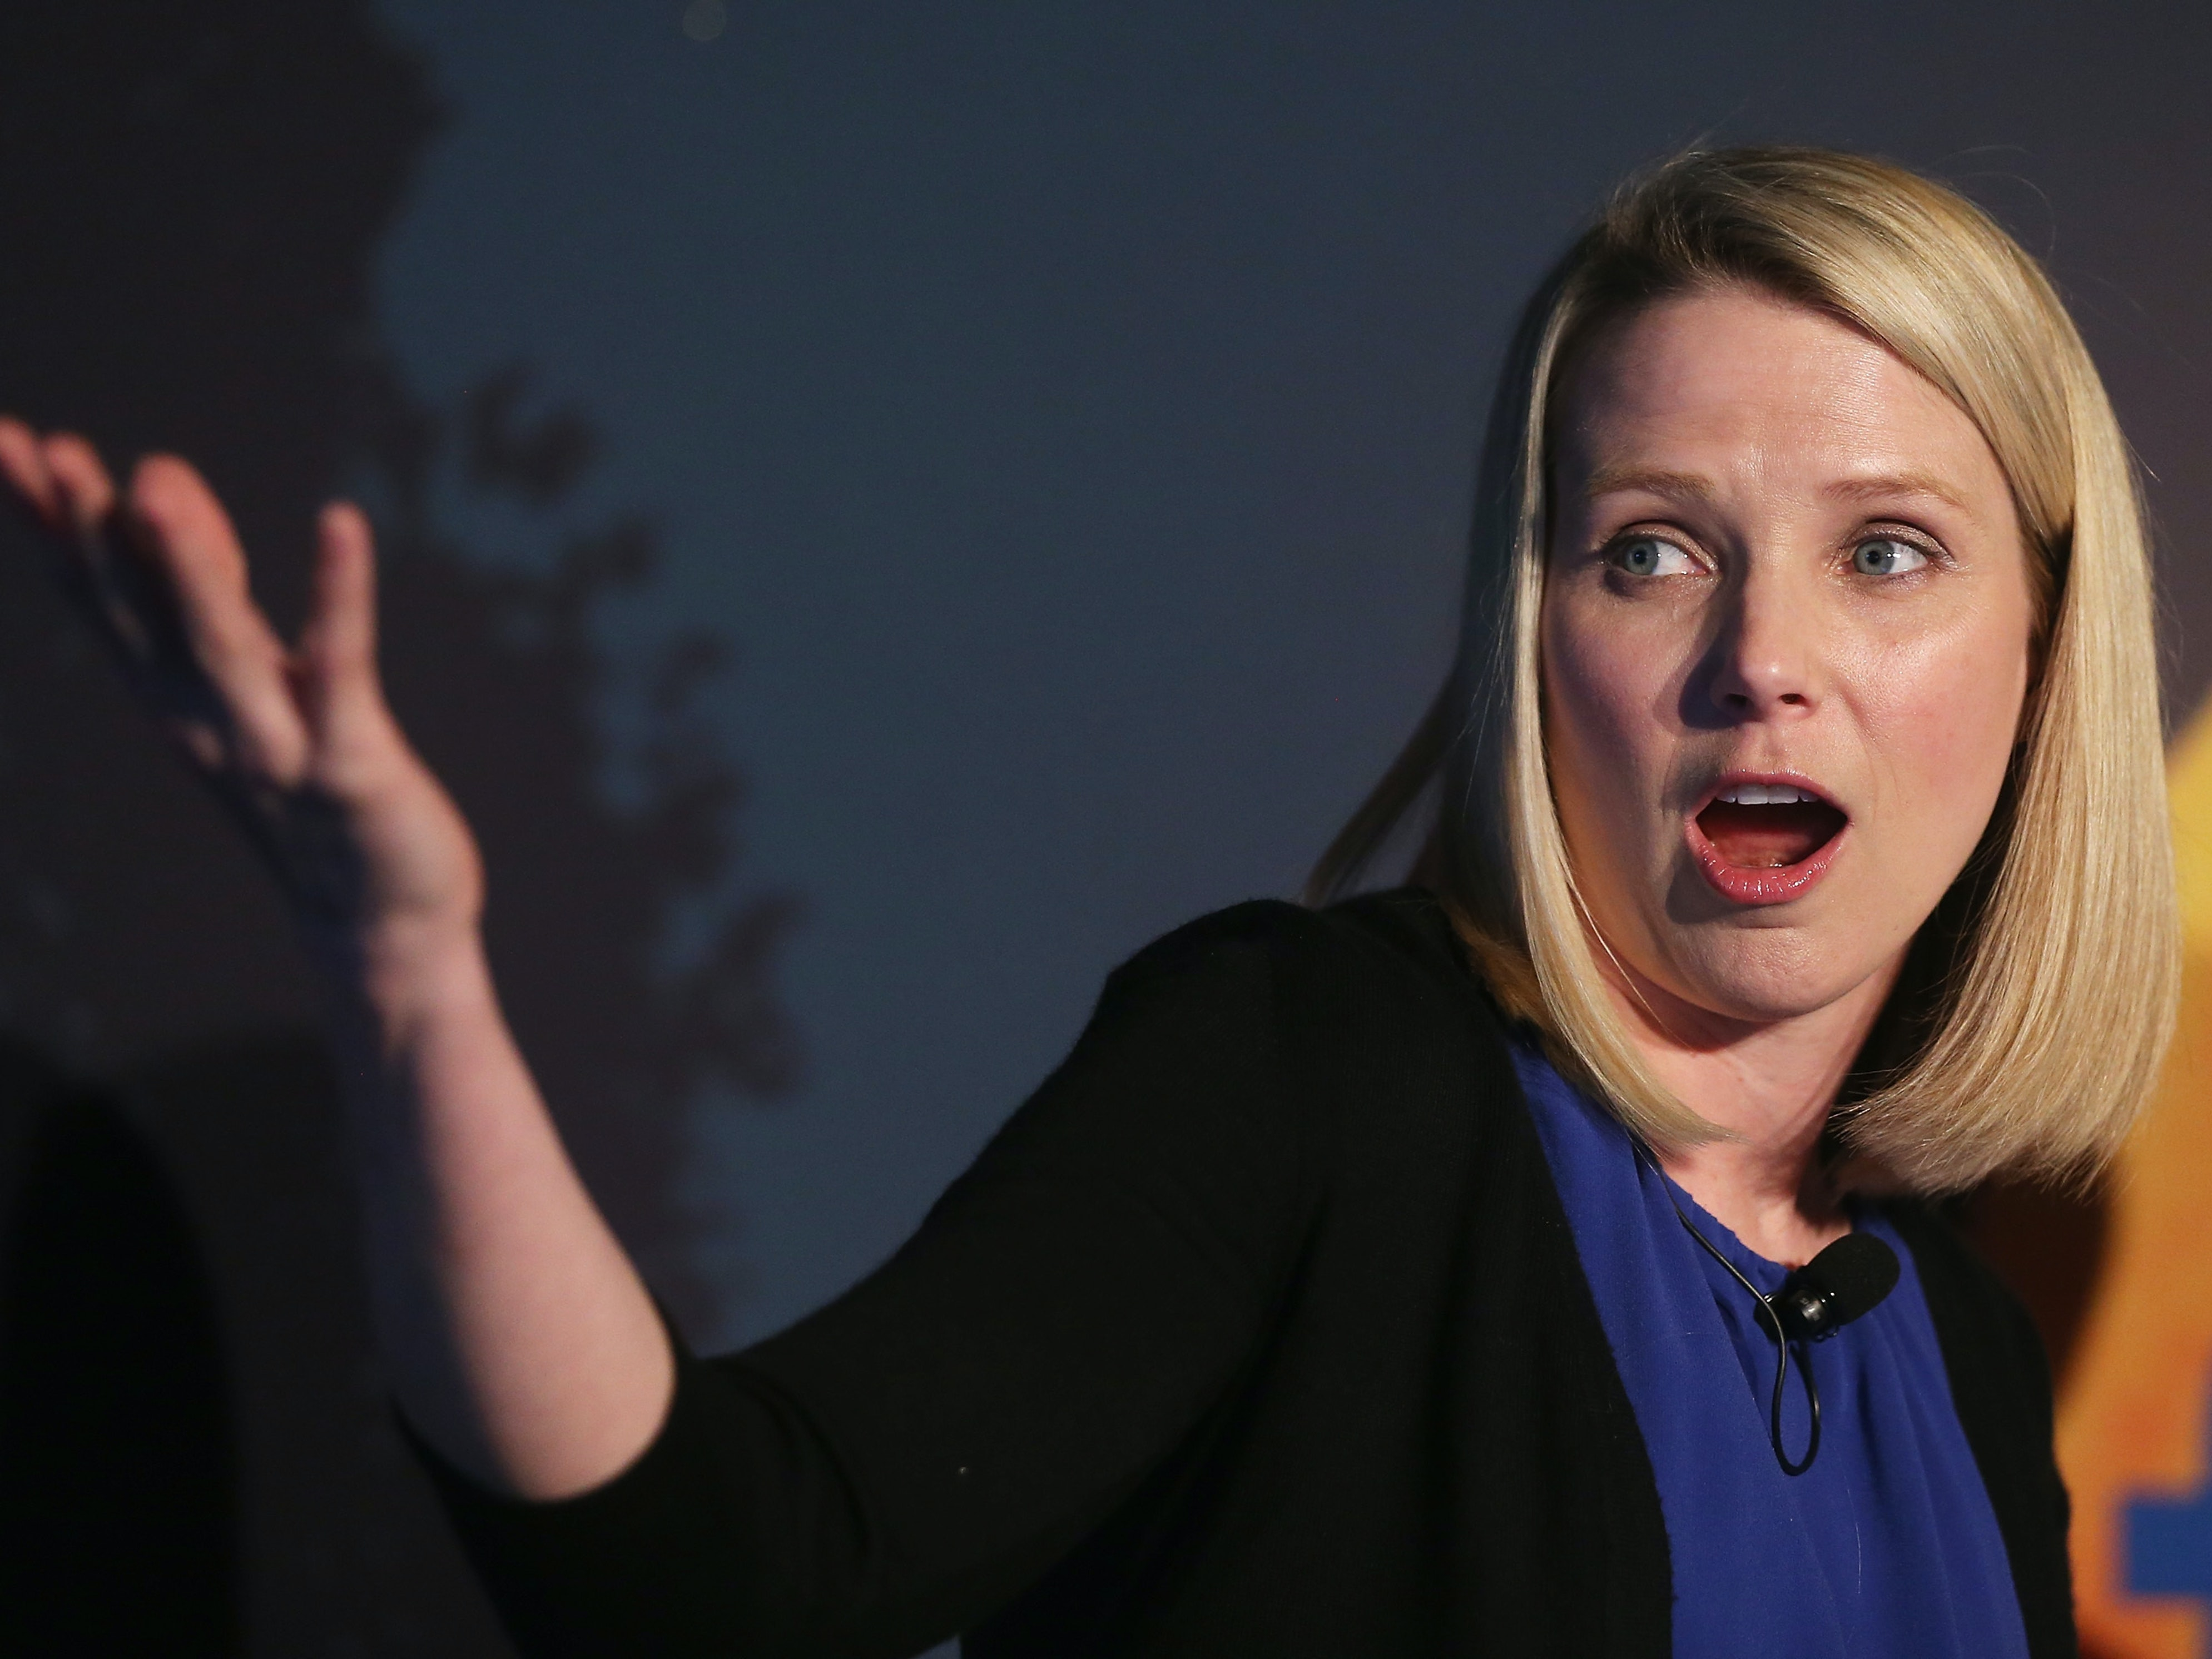 Yahoo CEO Marissa Mayer agreed to a government spying plan.